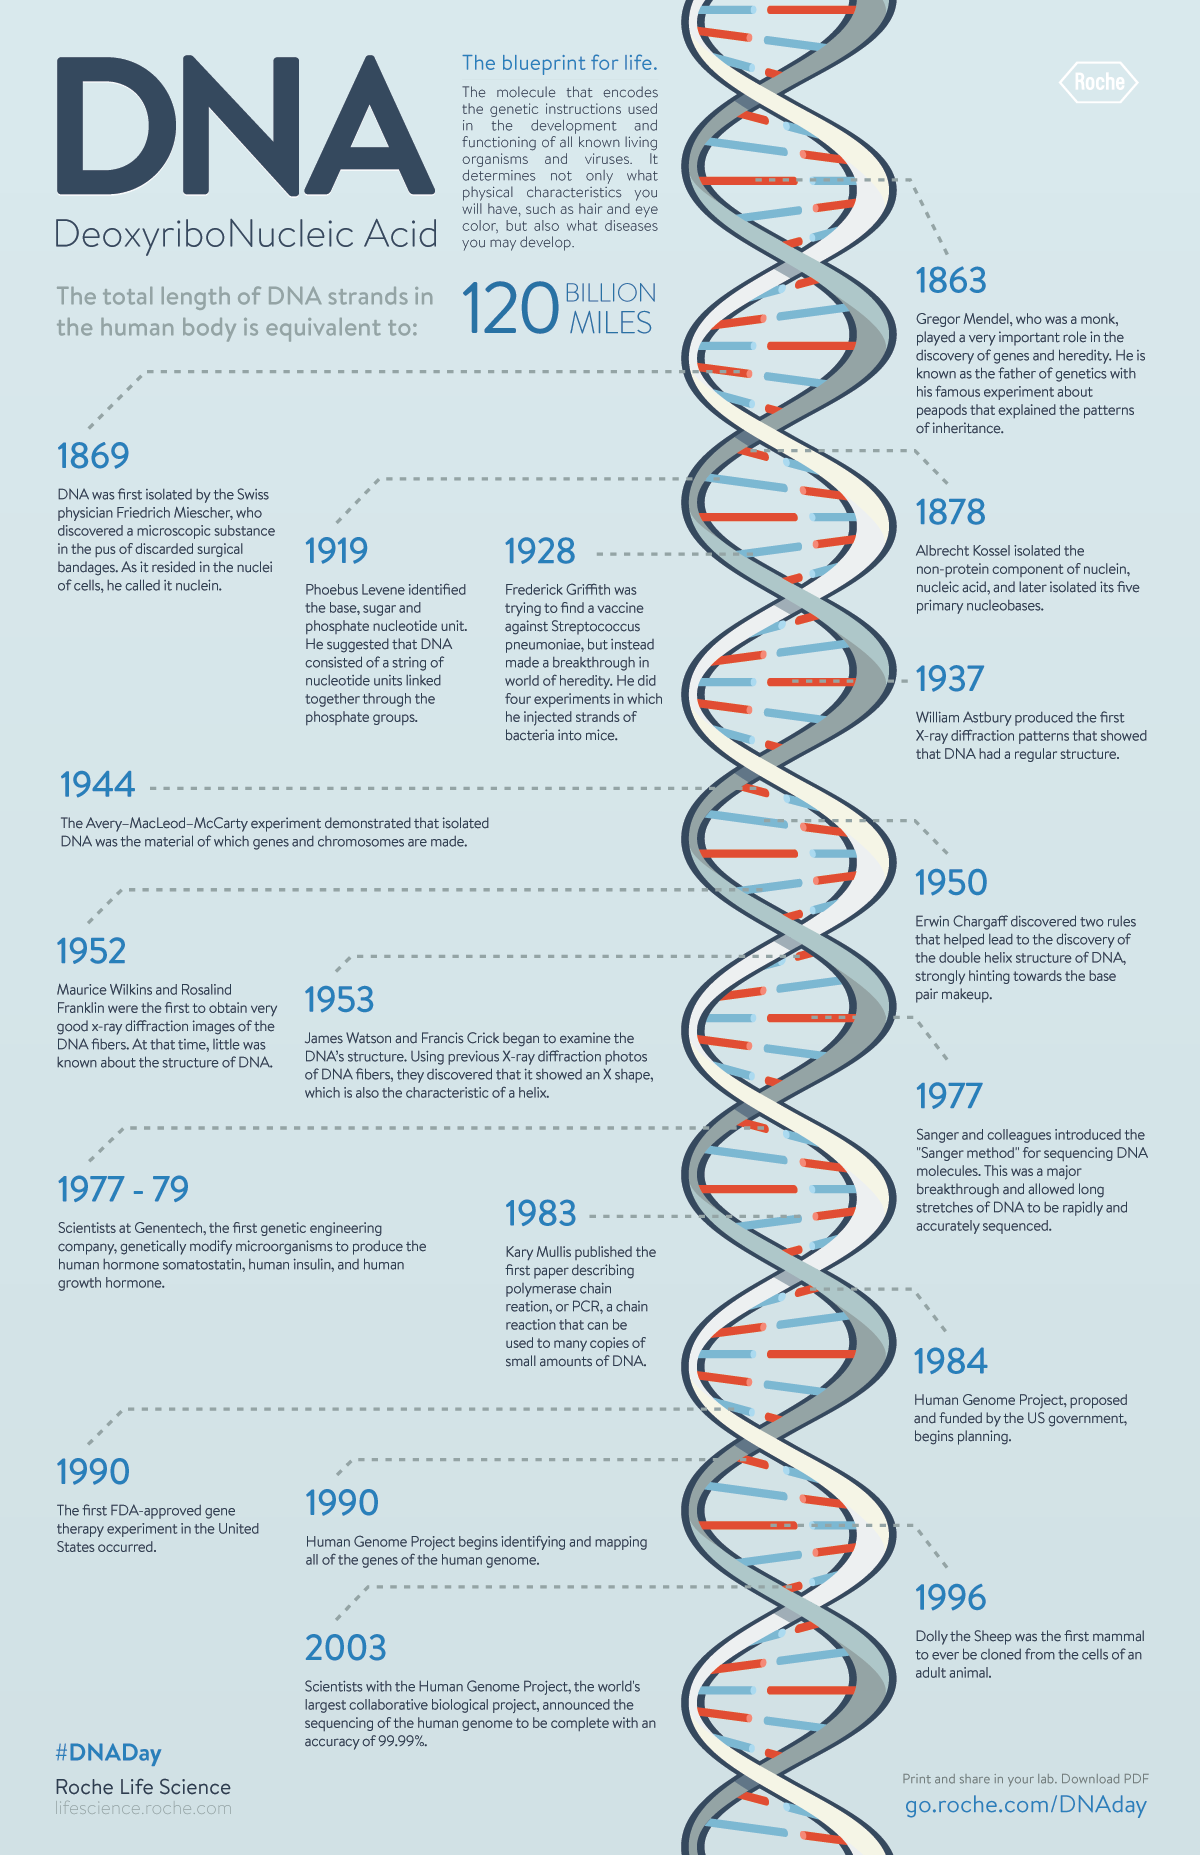 Dna timeline in 1953 james watson francis crick maurice wilkins dna timeline in 1953 james watson francis crick maurice wilkins and rosalind franklin and colleagues published several landmark papers on the structure malvernweather Images